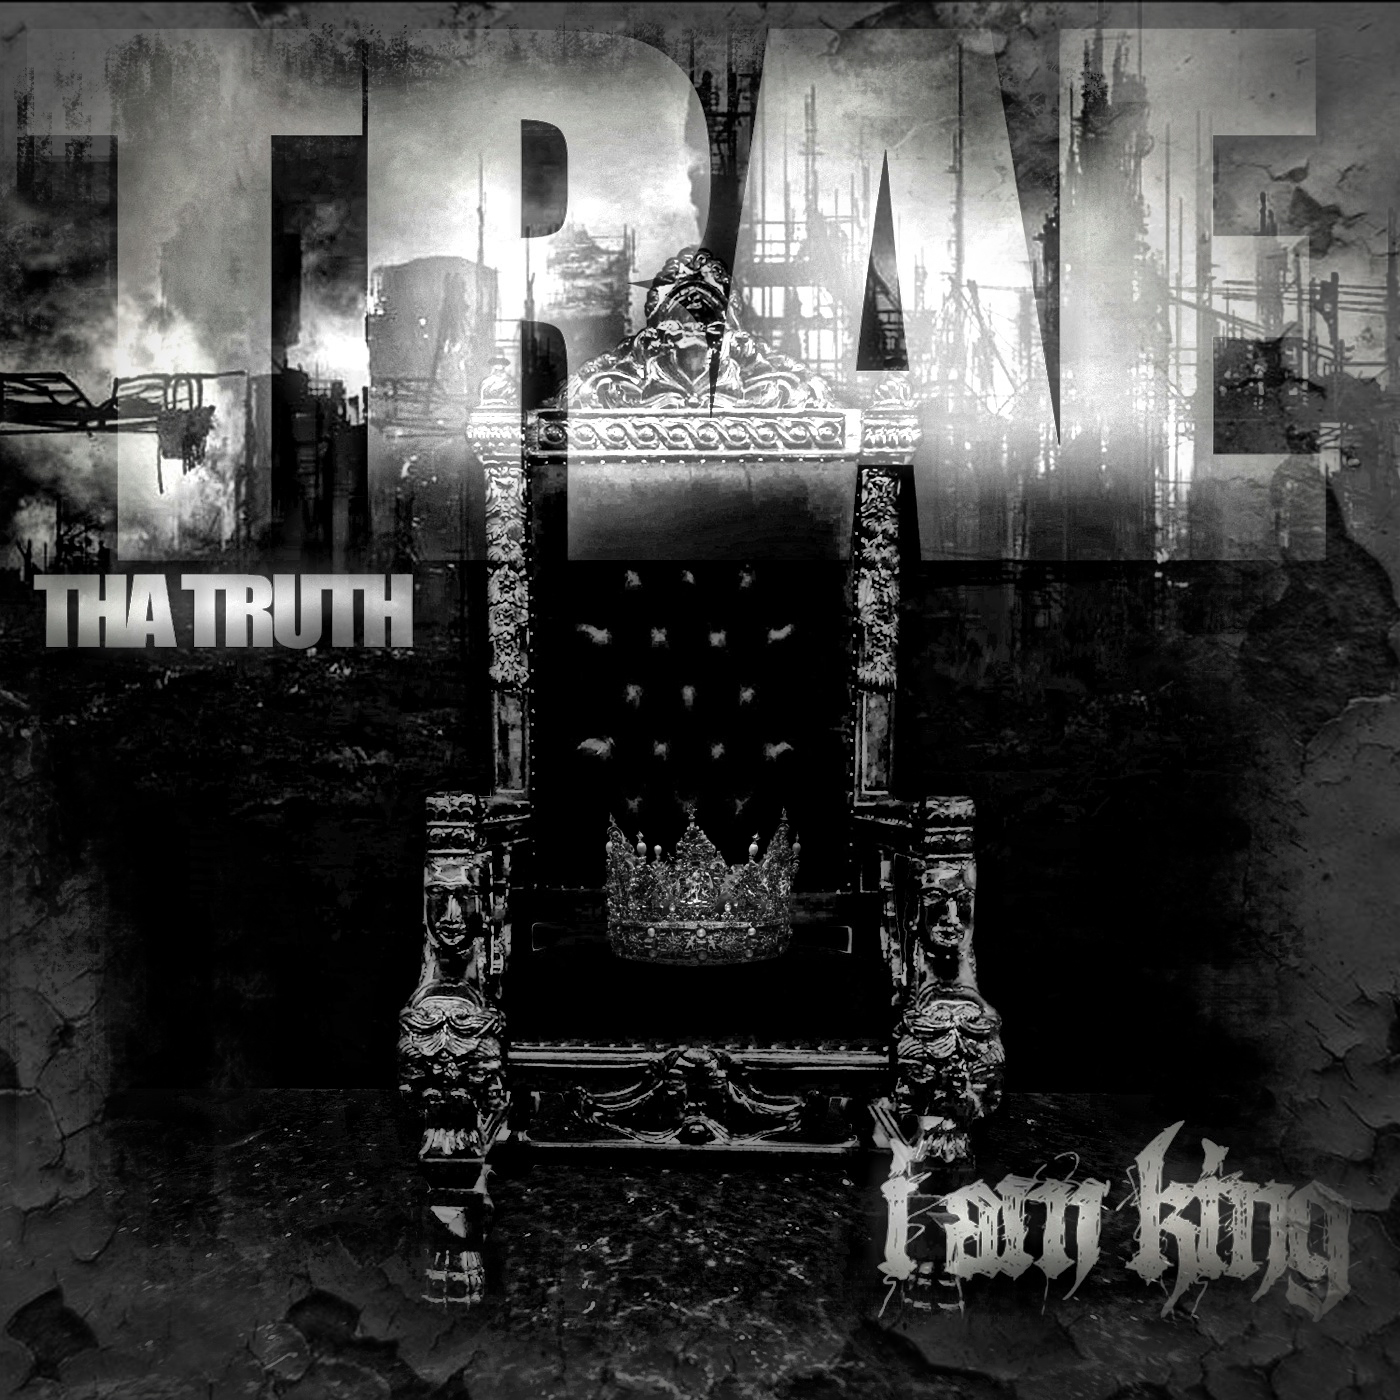 Iam A Rider Song: Trae Tha Truth Incluye De Diddy A Mayweather En Su Mixtape